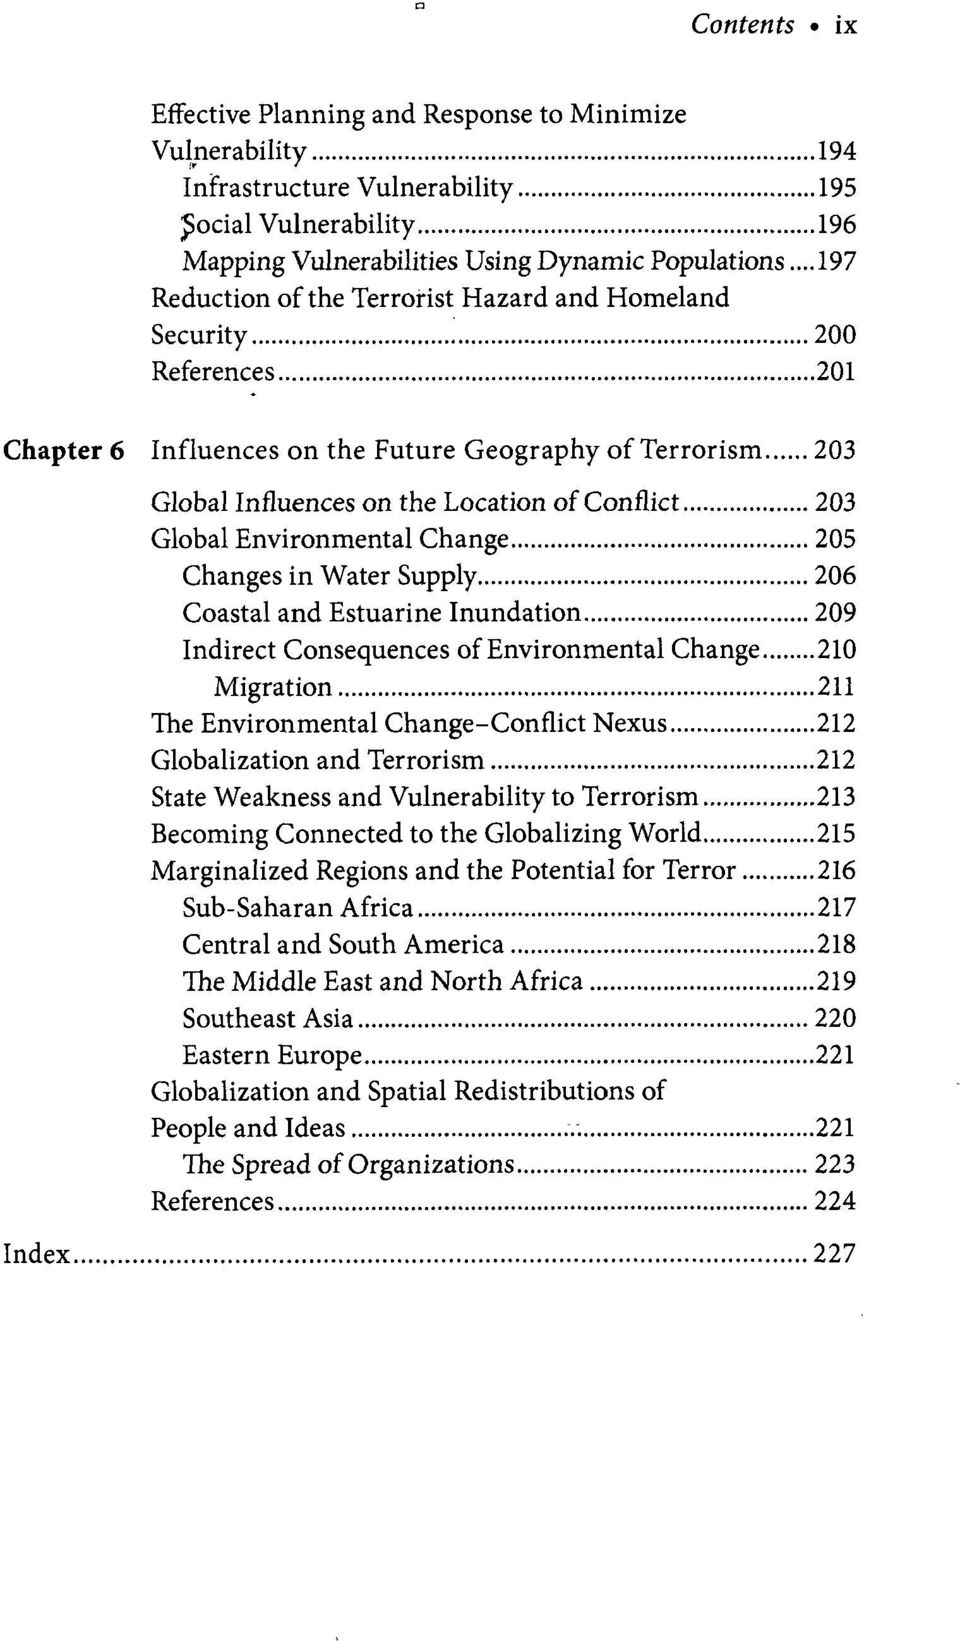 Environmental Change 205 Changes in Water Supply 206 Coastal and Estuarine Inundation 209 Indirect Consequences of Environmental Change 210 Migration 211 The Environmental Change-Conflict Nexus 212